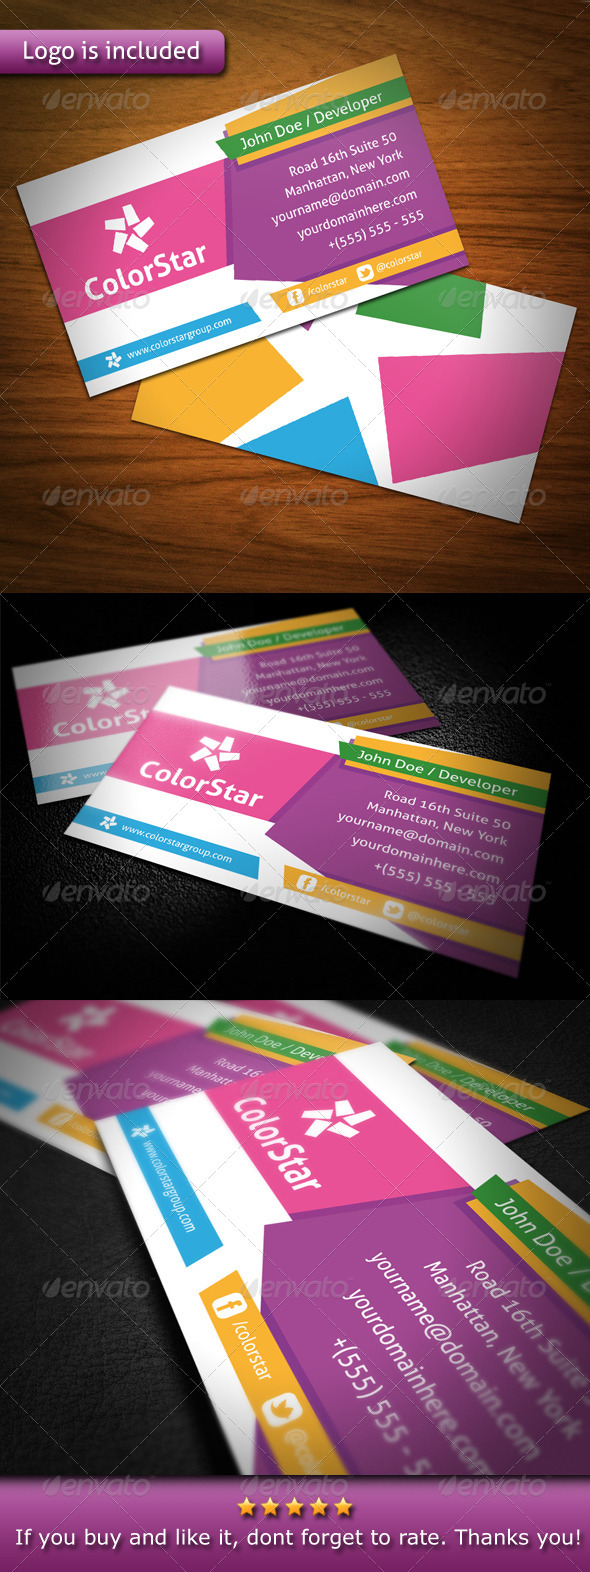 Color Star Creative Business Card by BossTwinsMusic | GraphicRiver